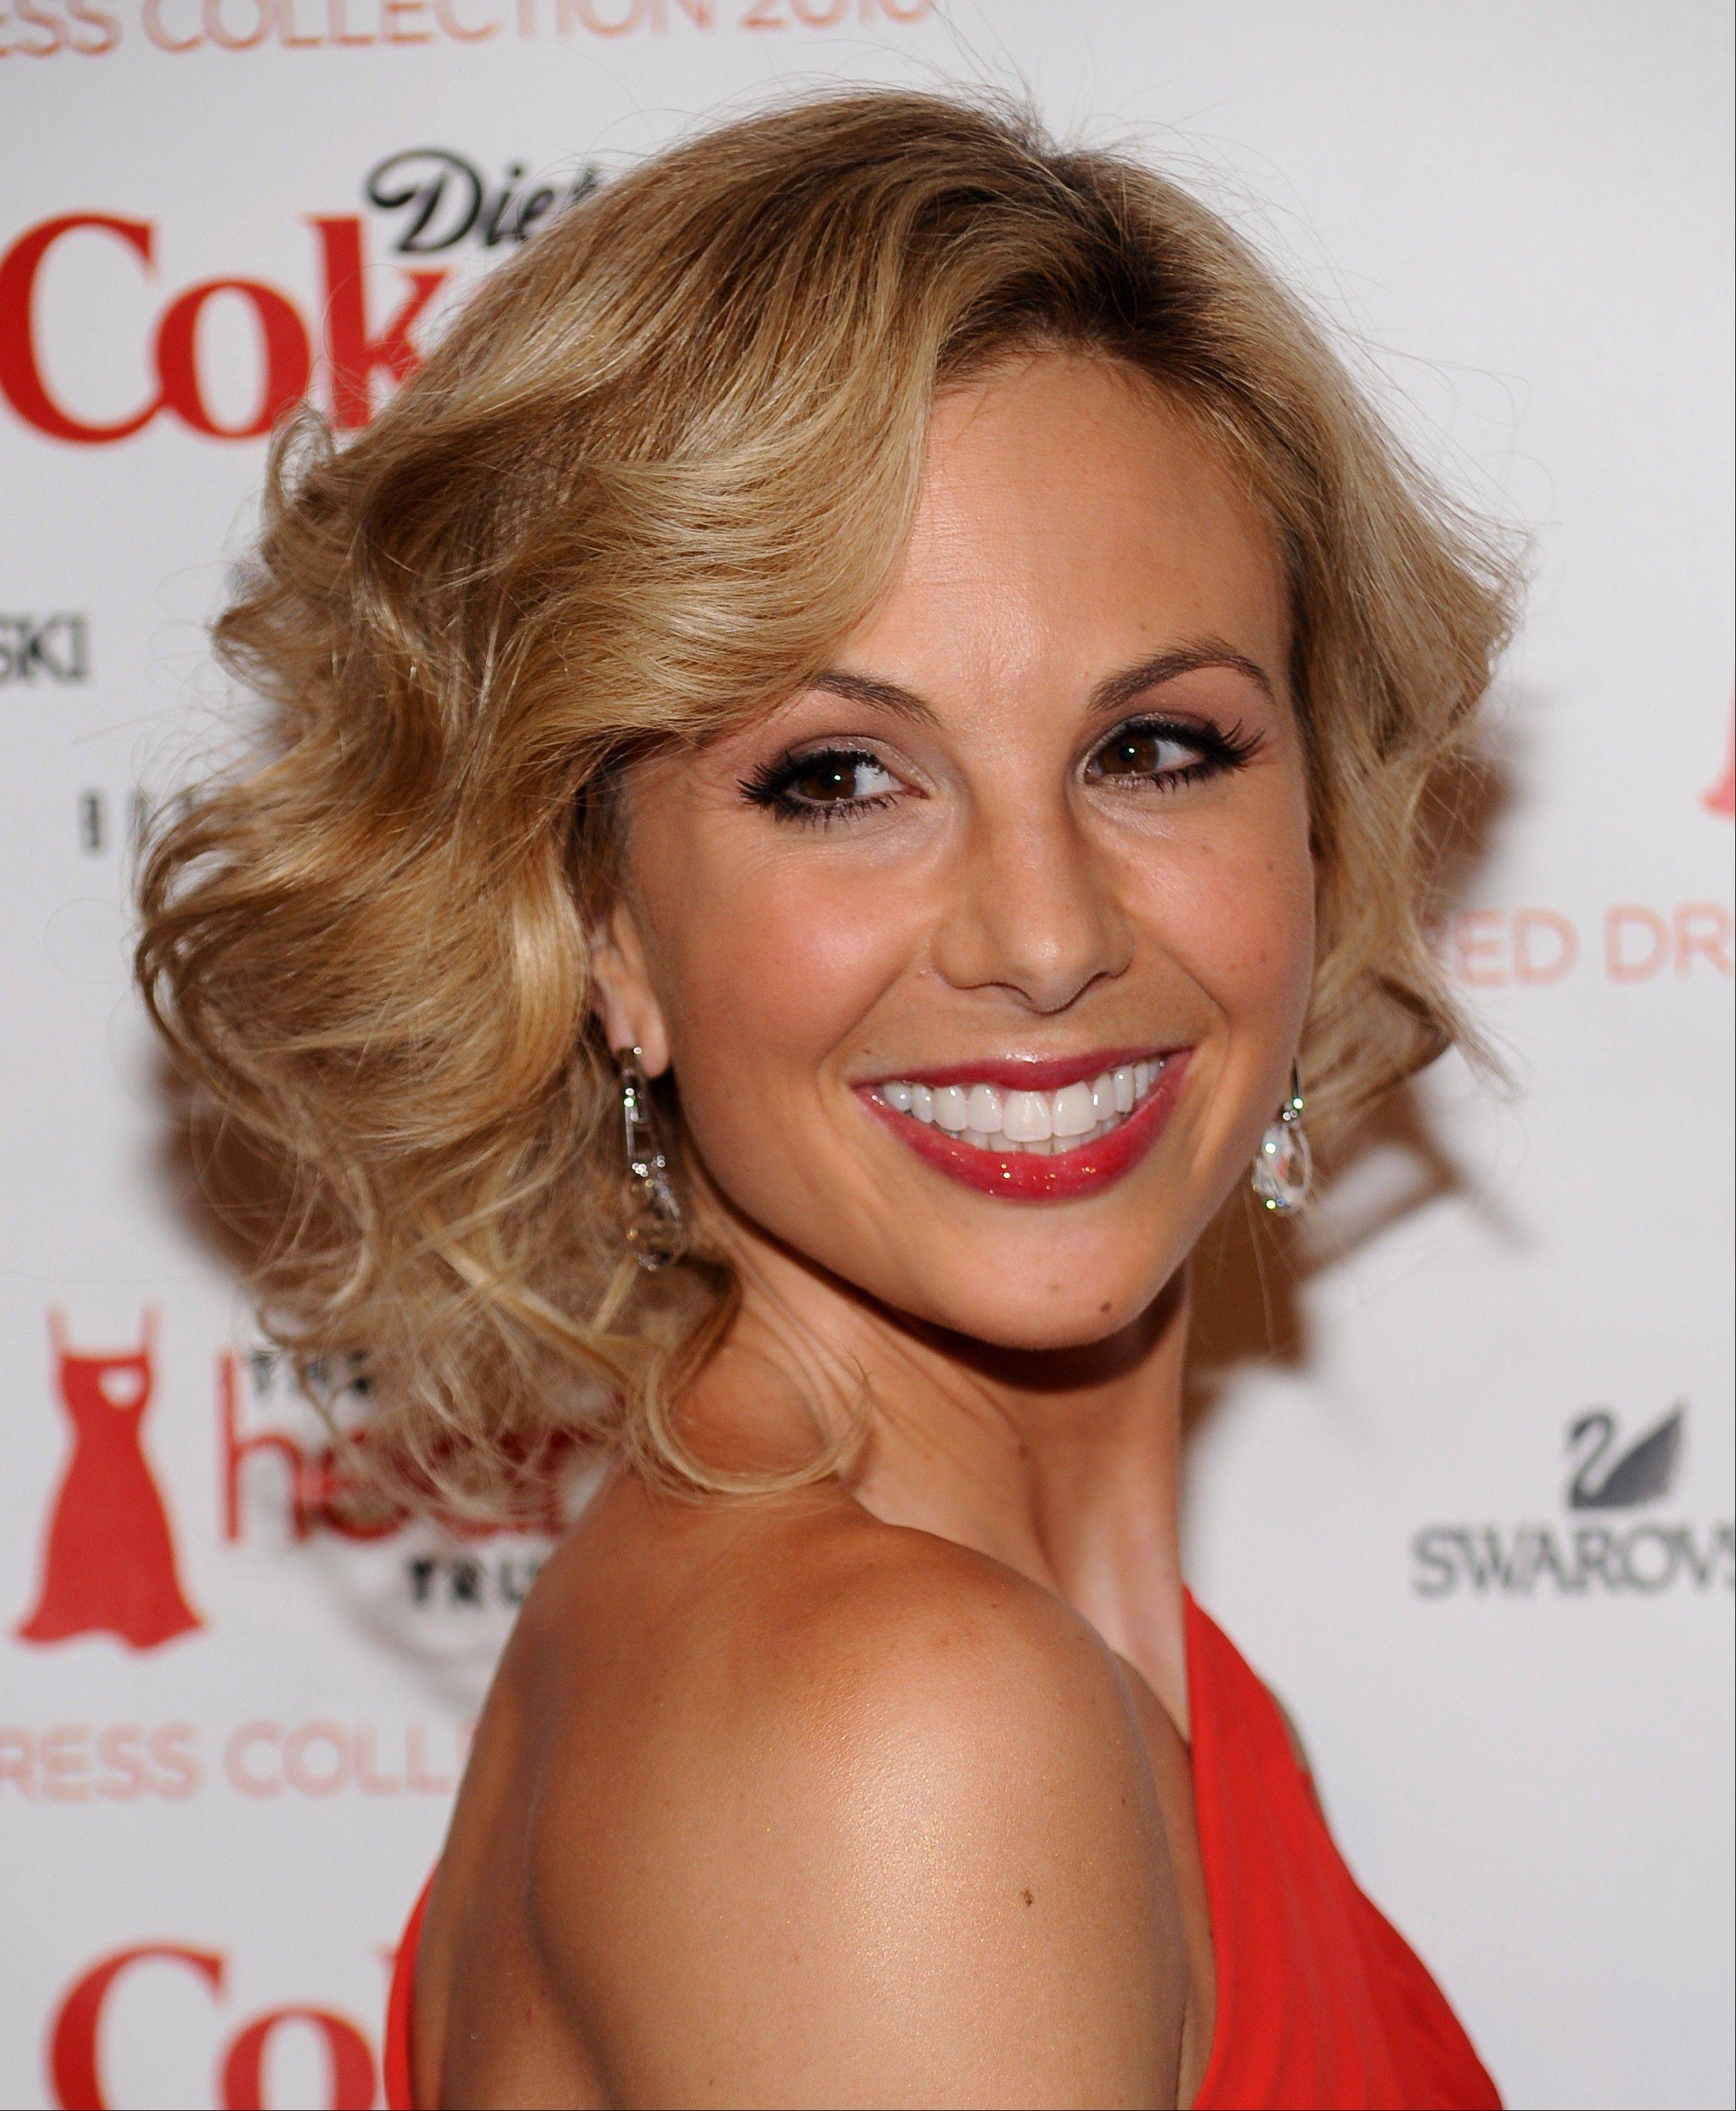 "In this Feb. 11, 2010 file photo, television personality Elisabeth Hasselbeck arrives at The Heart Truth's Red Dress Collection 2010 fashion show in New York. Hasselbeck is leaving the desk at ""The View"" for the couch on Fox News Channelís ""Fox & Friends."" The news network said Tuesday, July 9, 2013, that Hasselbeck, who has been on Barbara Walters' syndicated daytime show for a decade, will join co-anchors Steve Doocy and Brian Kilmeade on Foxís morning show in September."